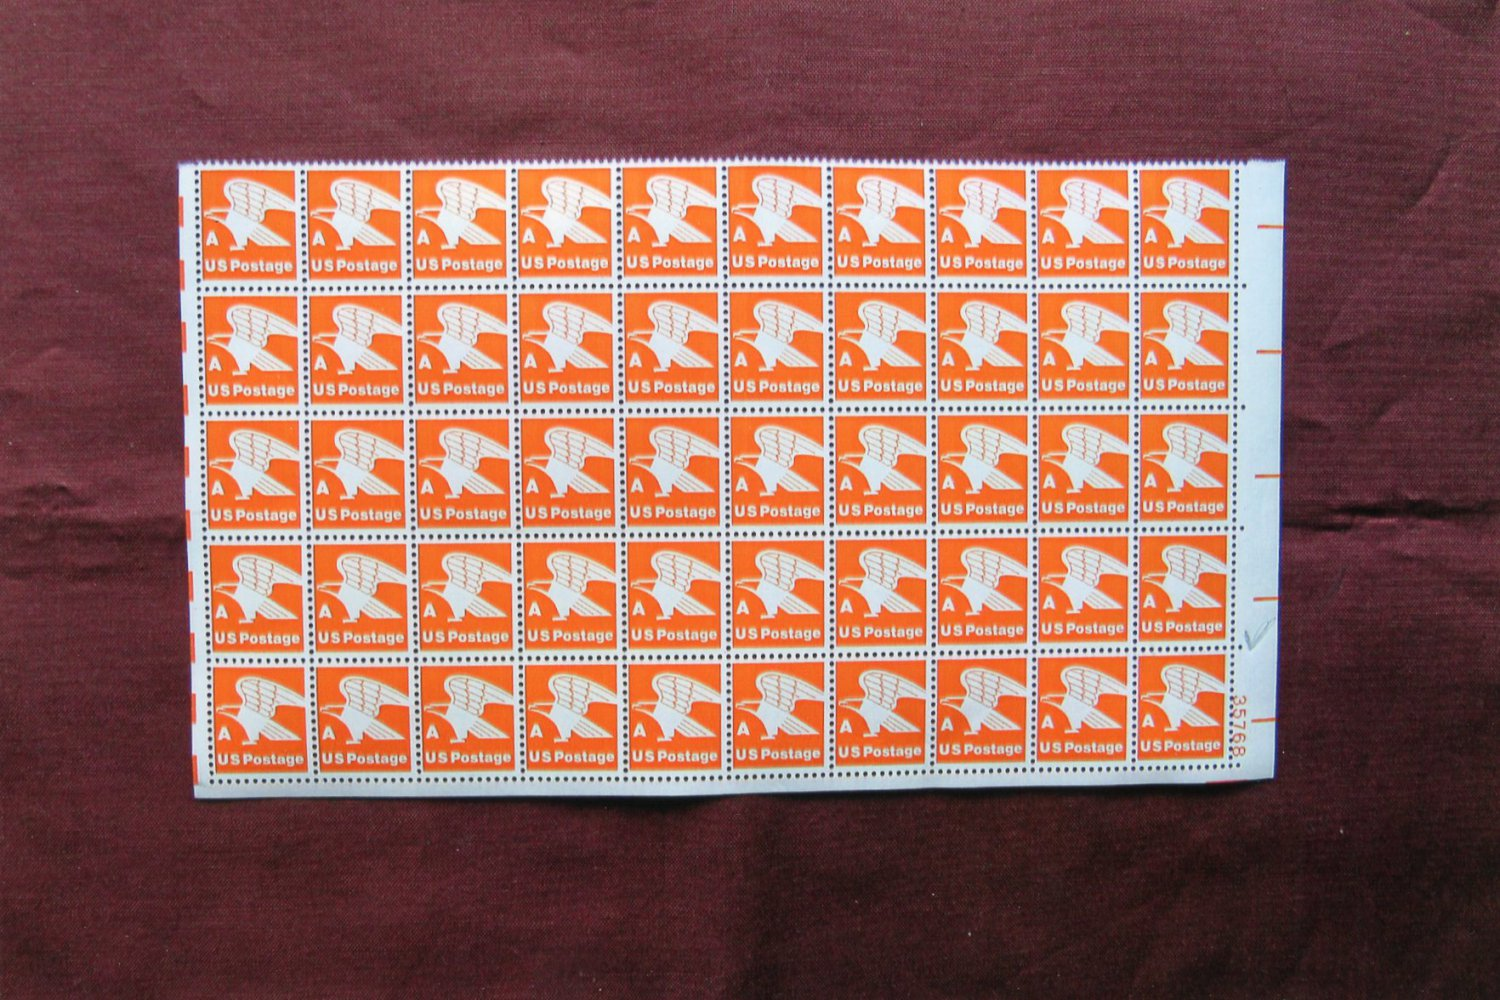 Eagle 'A' Rate Postage Stamps Orange & White, 14c, 1978, MNH, One Half Sheet